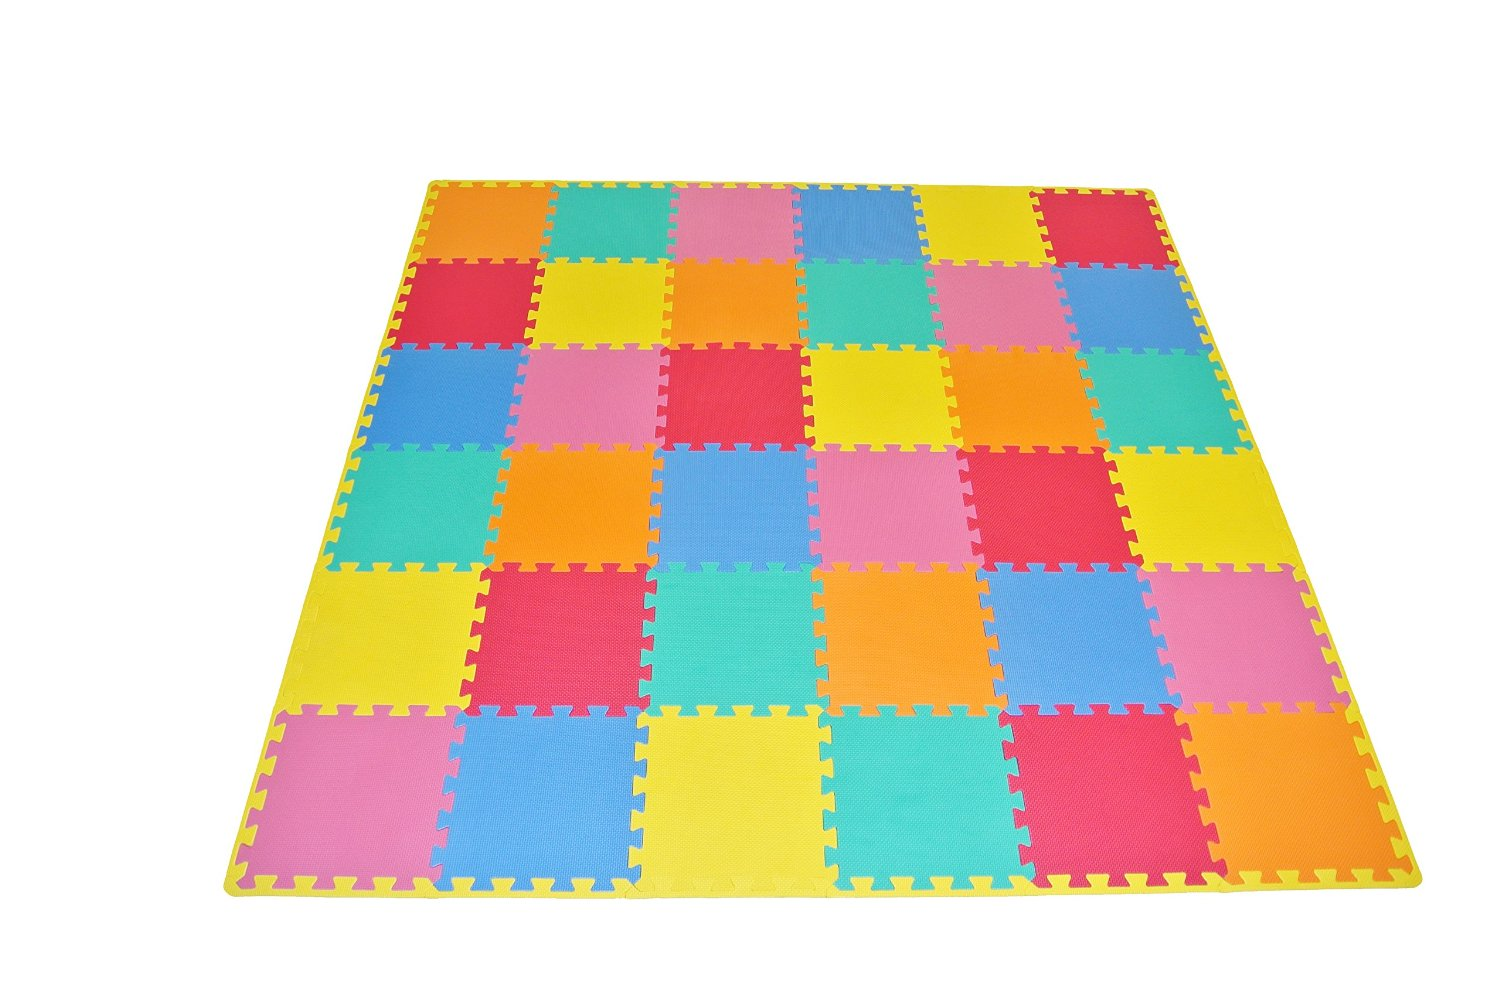 prosource puzzle solid foam play floor mat kids toddler baby 36 tiles with edges ebay. Black Bedroom Furniture Sets. Home Design Ideas